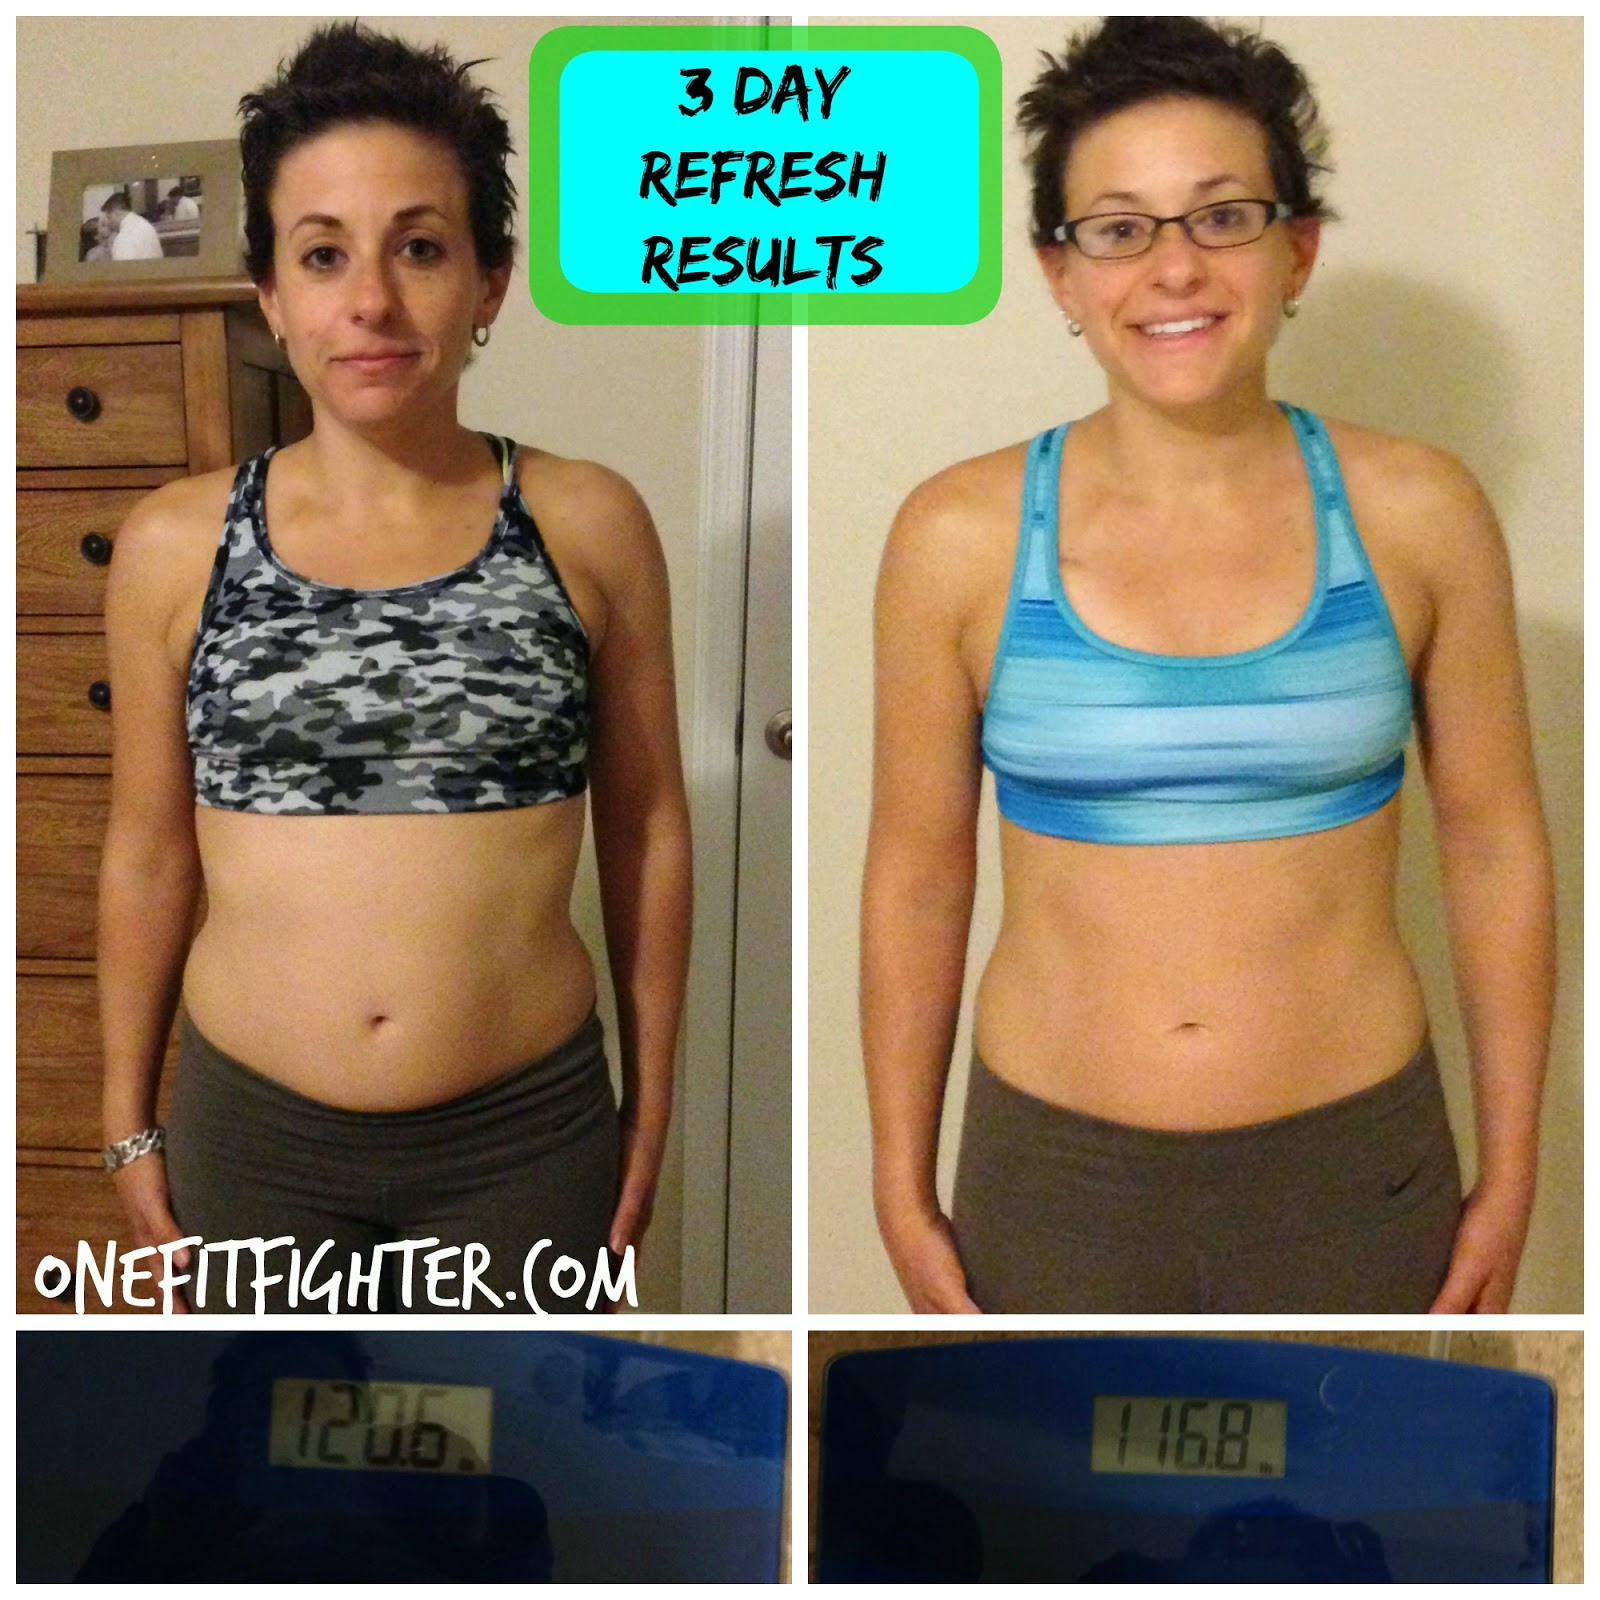 3 day refresh results, 3 day refresh, beachbody transformation